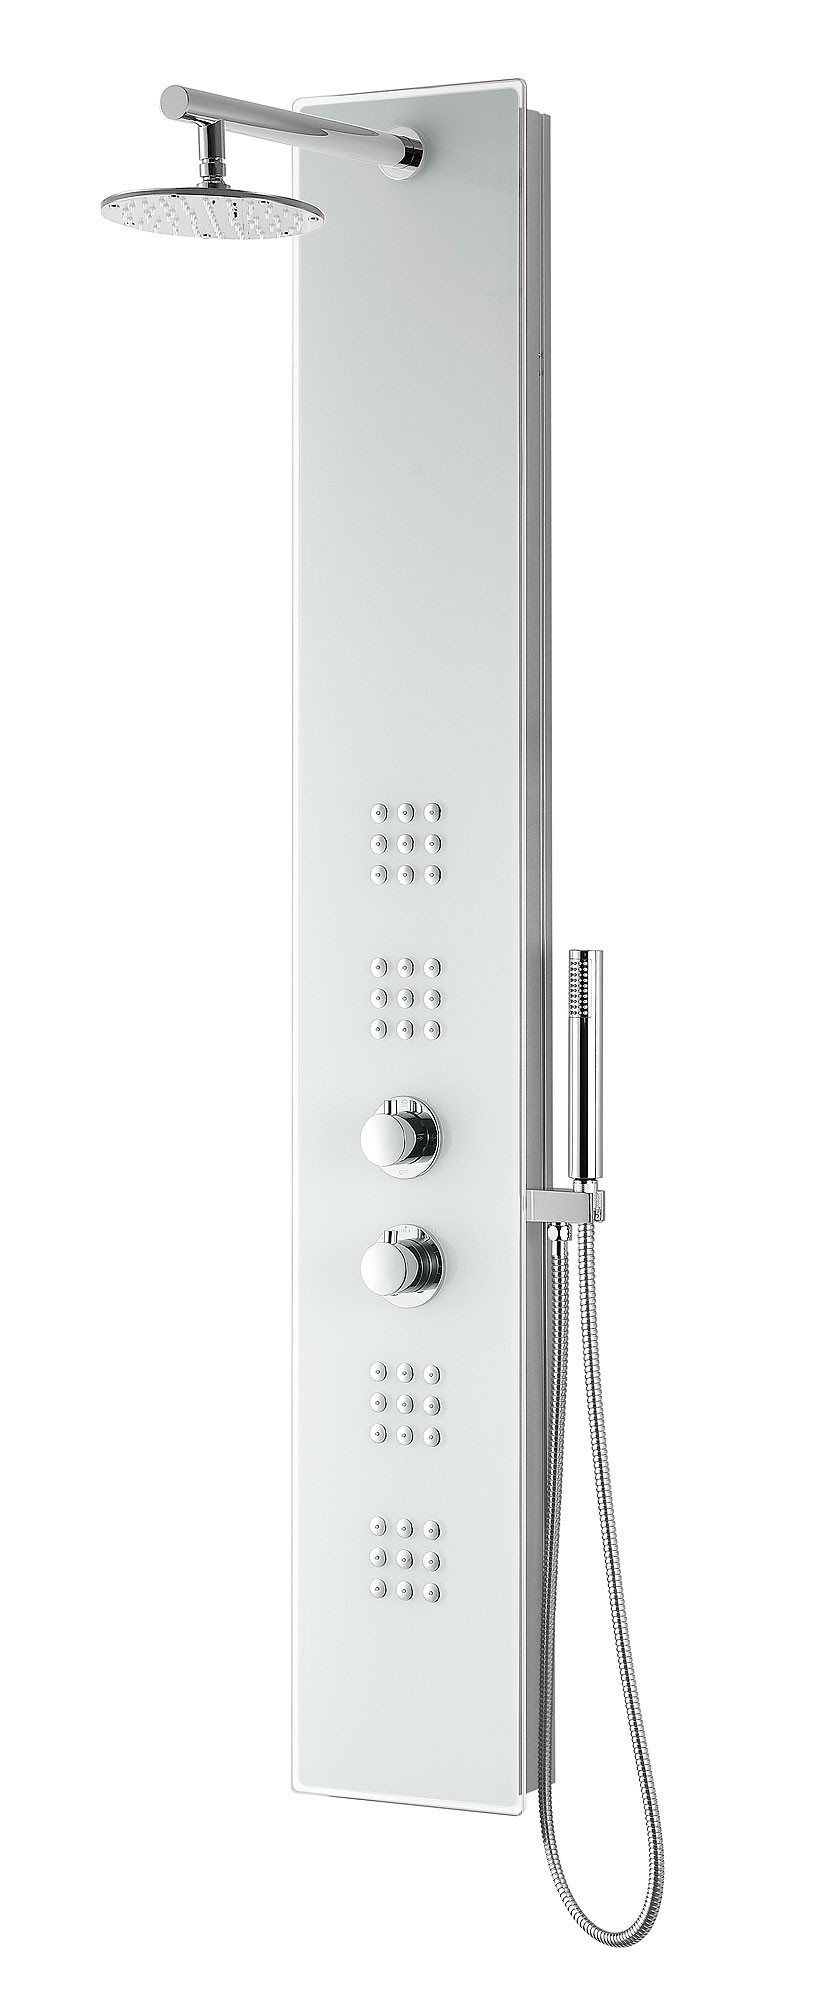 ANZZI SP-AZ048 Veld Series Shower Panel System With Spray Wand In White